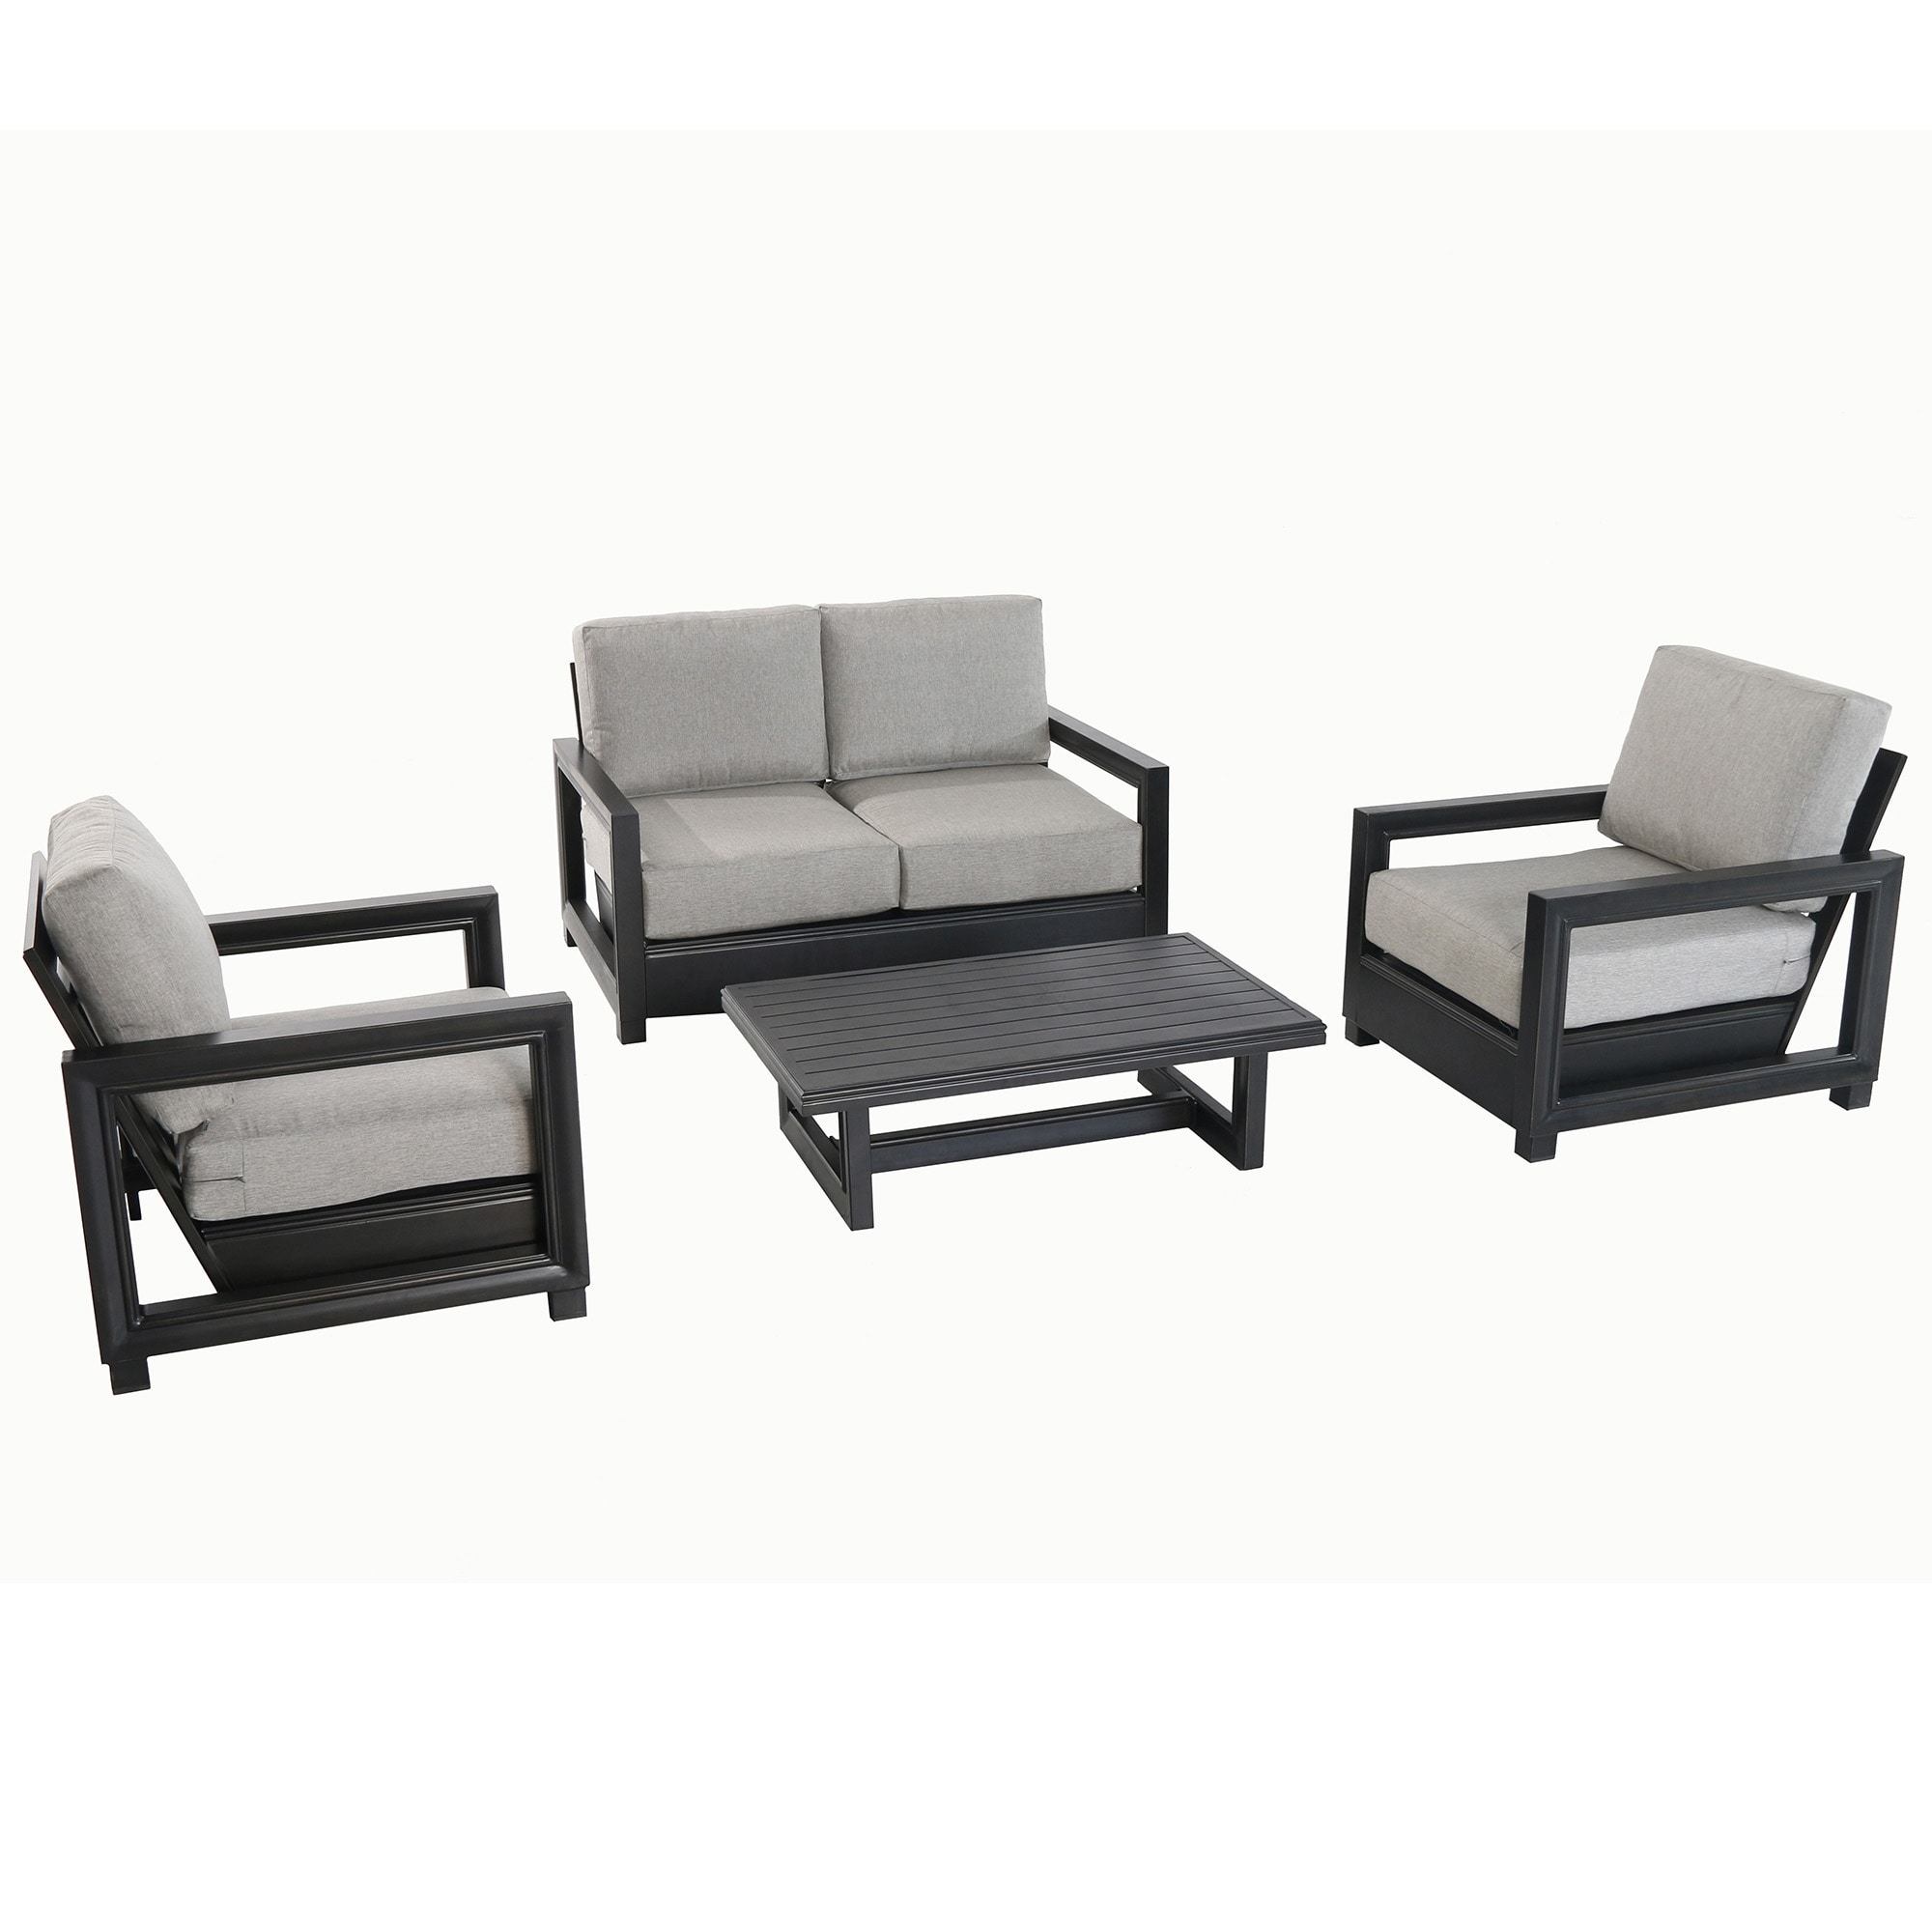 Russell Outdoor 4 Piece Seating Set with Loveseat Lounge Chairs